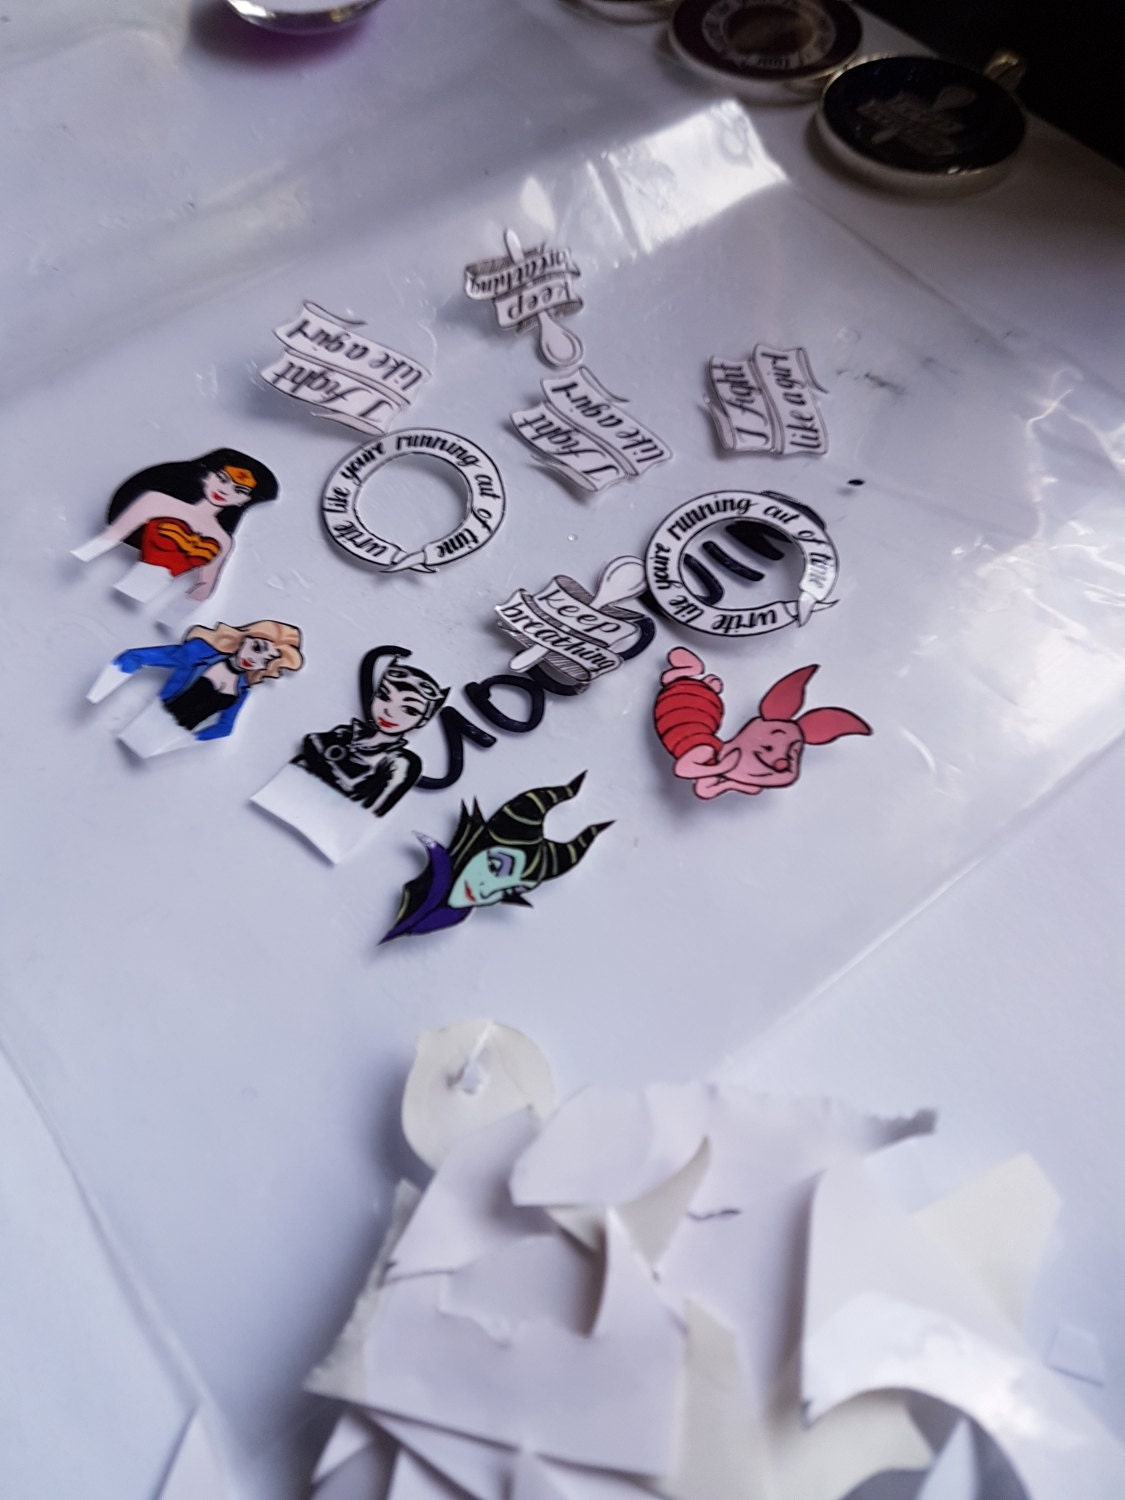 Several pieces of paper with debris from cutting them out